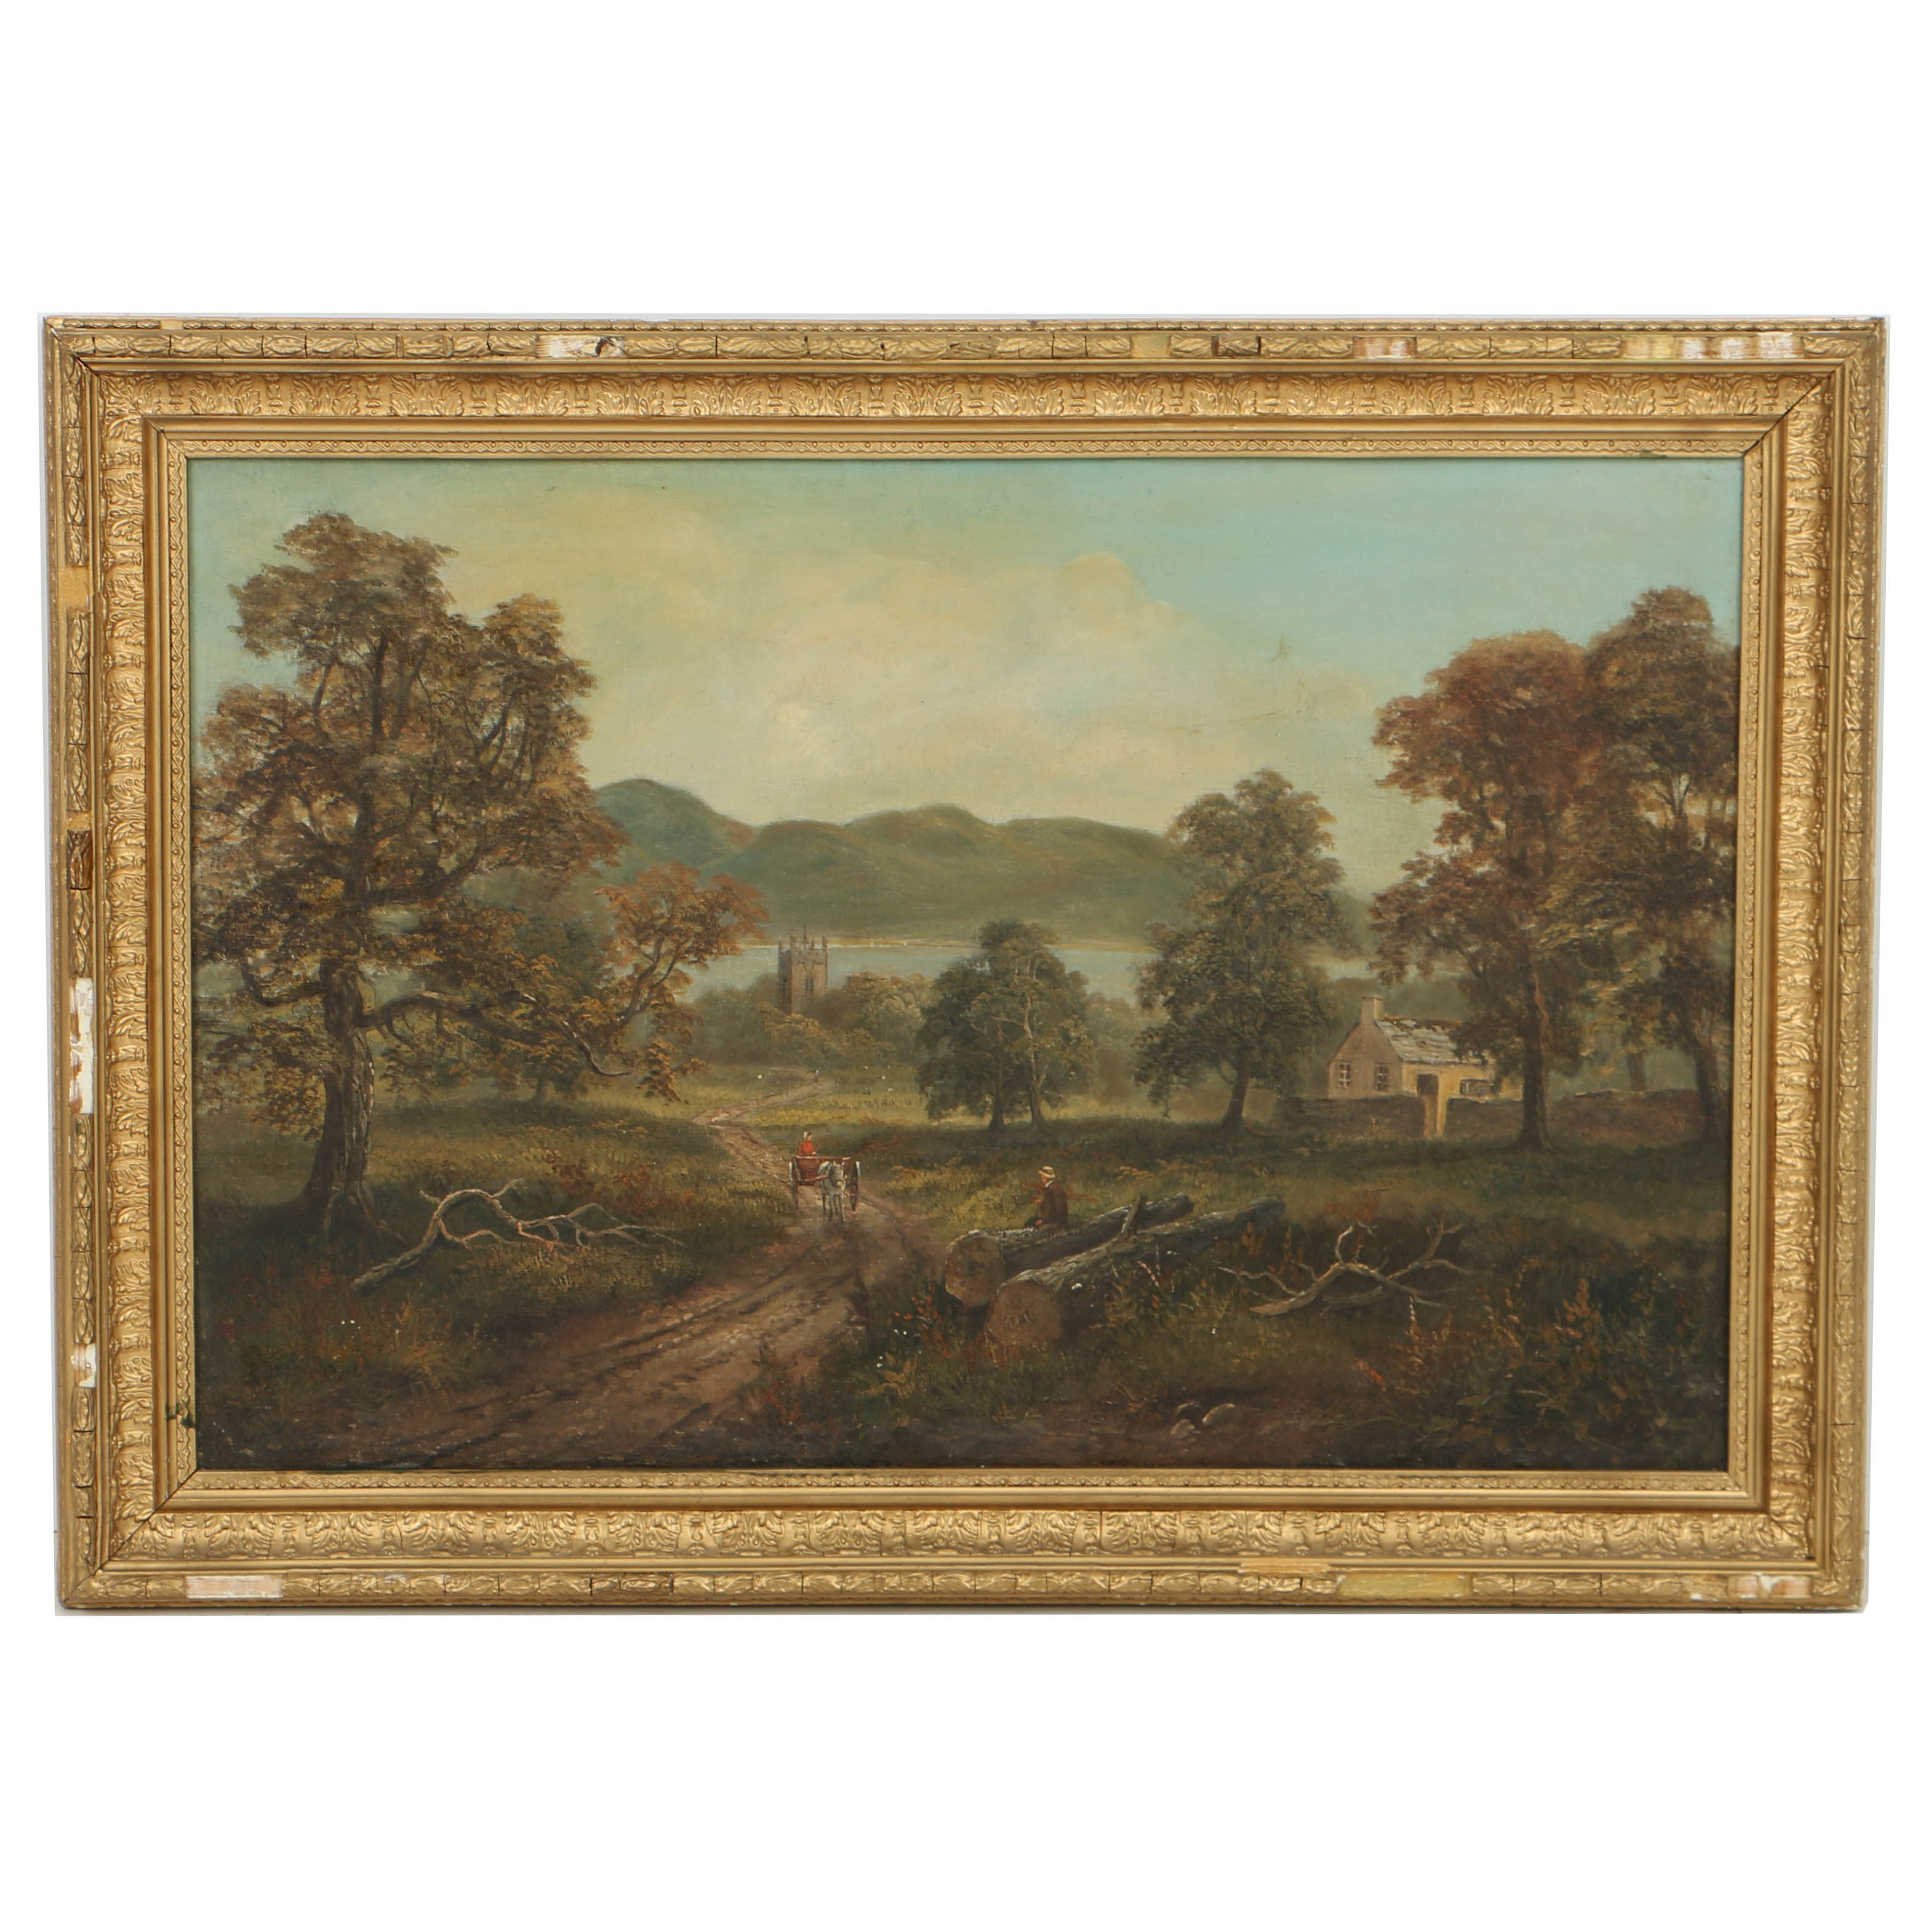 19th Century Continental School Oil Painting on Canvas Pastoral Landscape